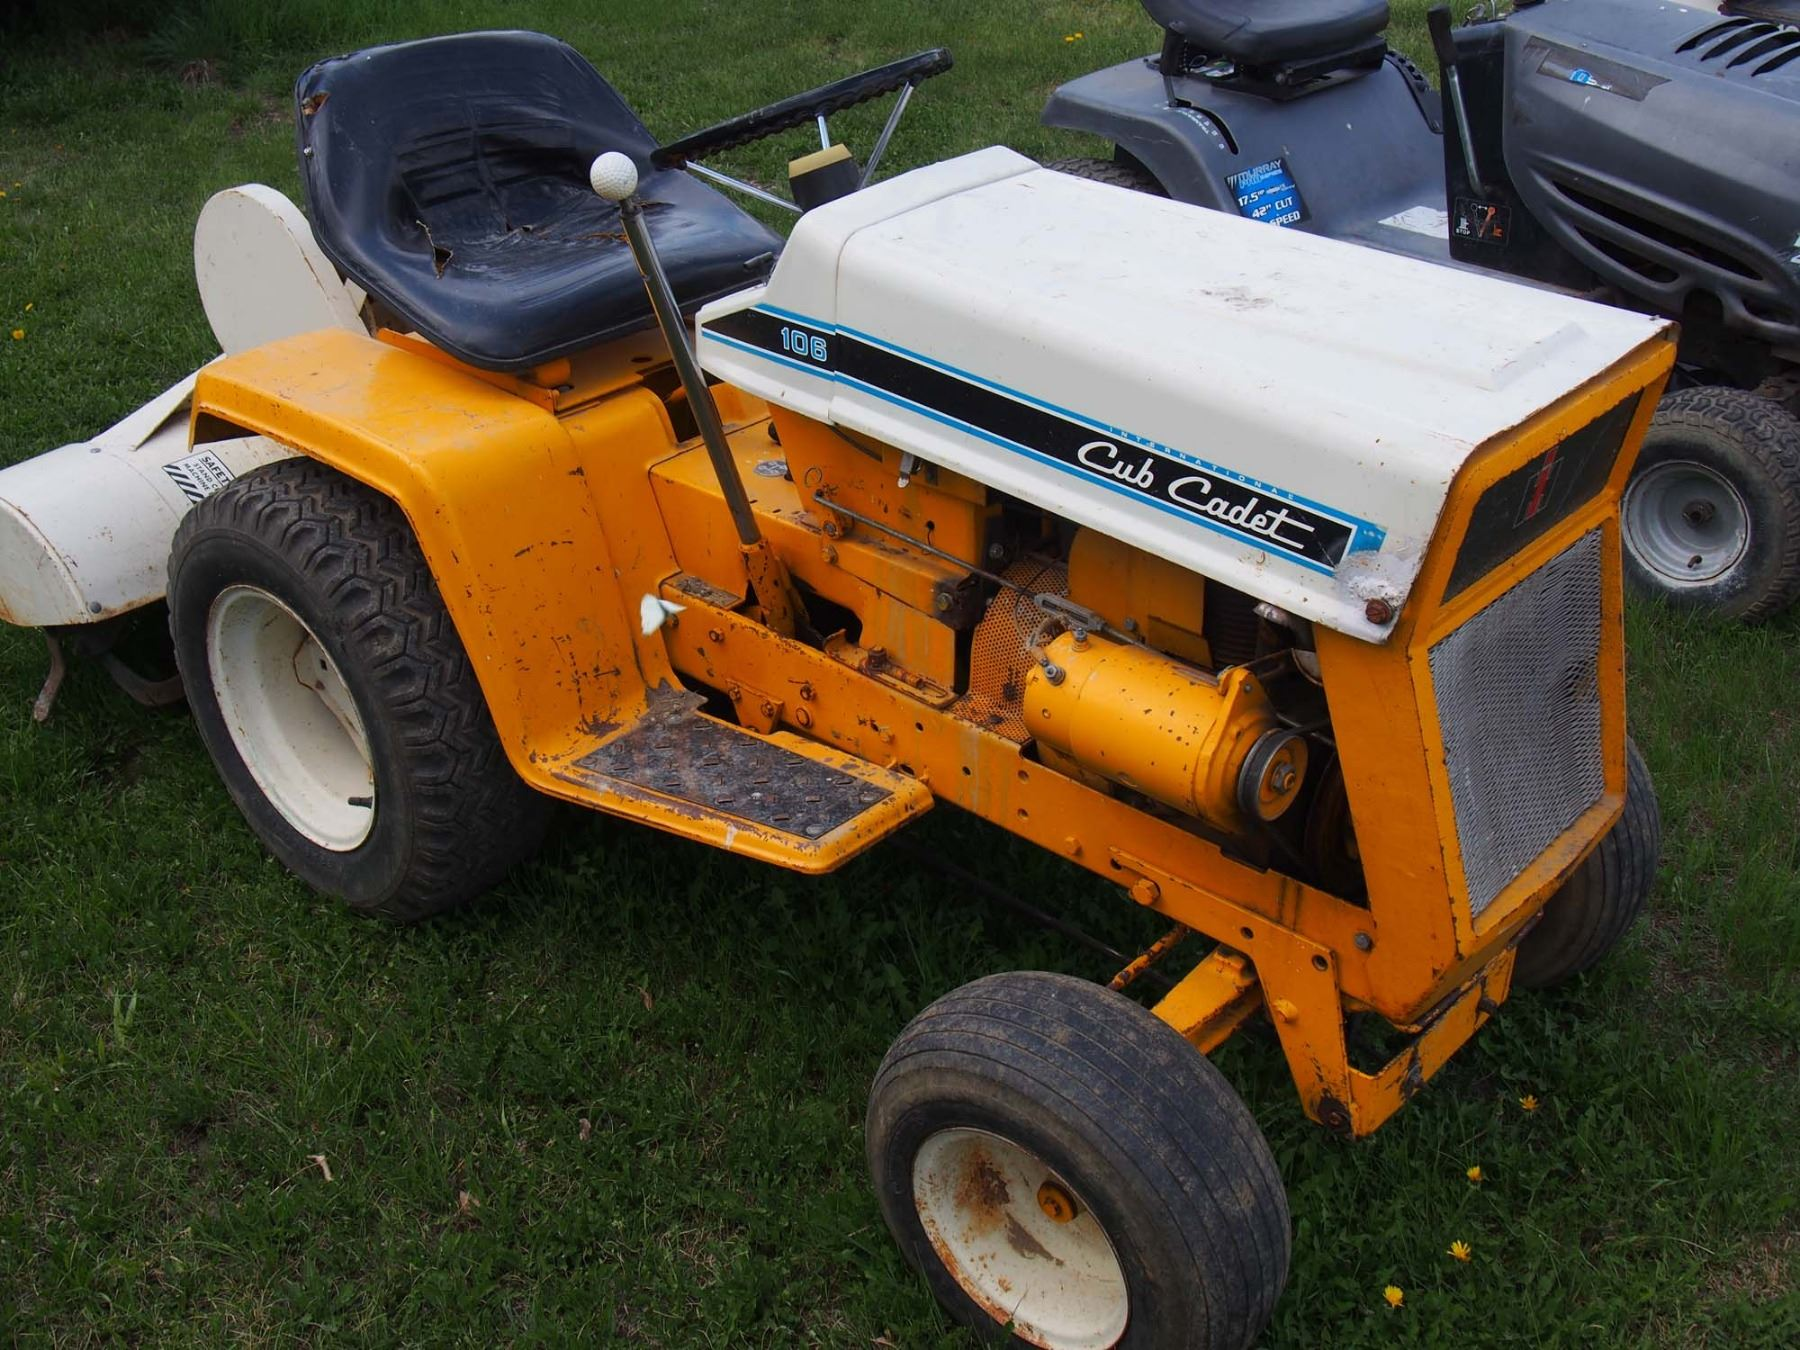 Cub Cadet Model 106 Wiring Ask Answer Diagram International Lawn Tractor And Cultivator Rh Icollector Com